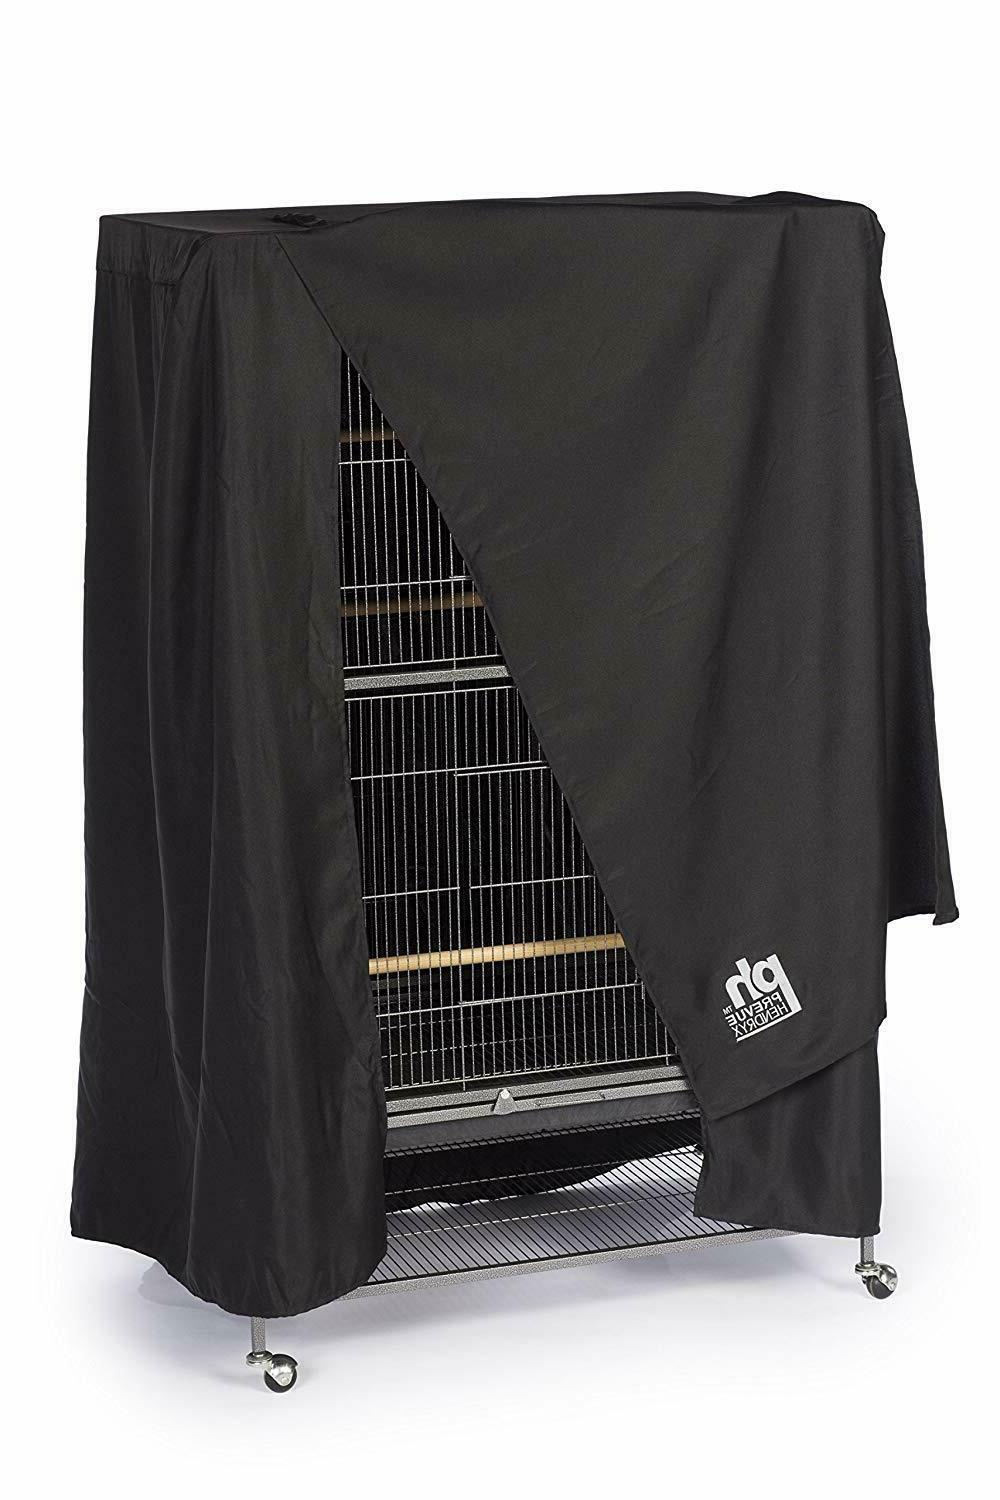 Prevue Hendryx Pet Products Good Night Bird Cage Cover, Larg